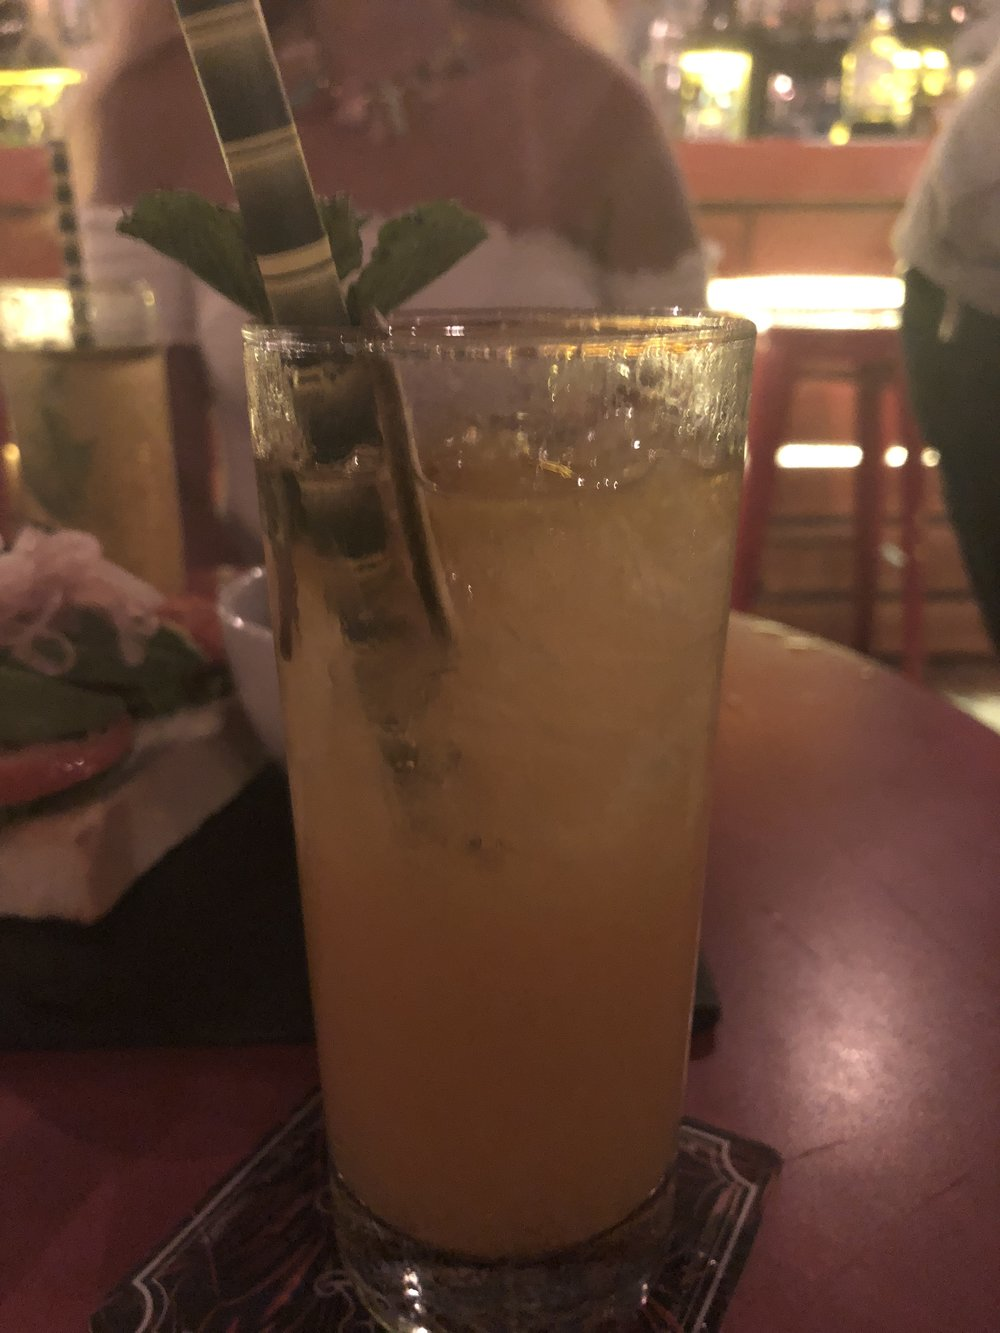 This, my friends is a strong ass Mai Tai. Cheers.